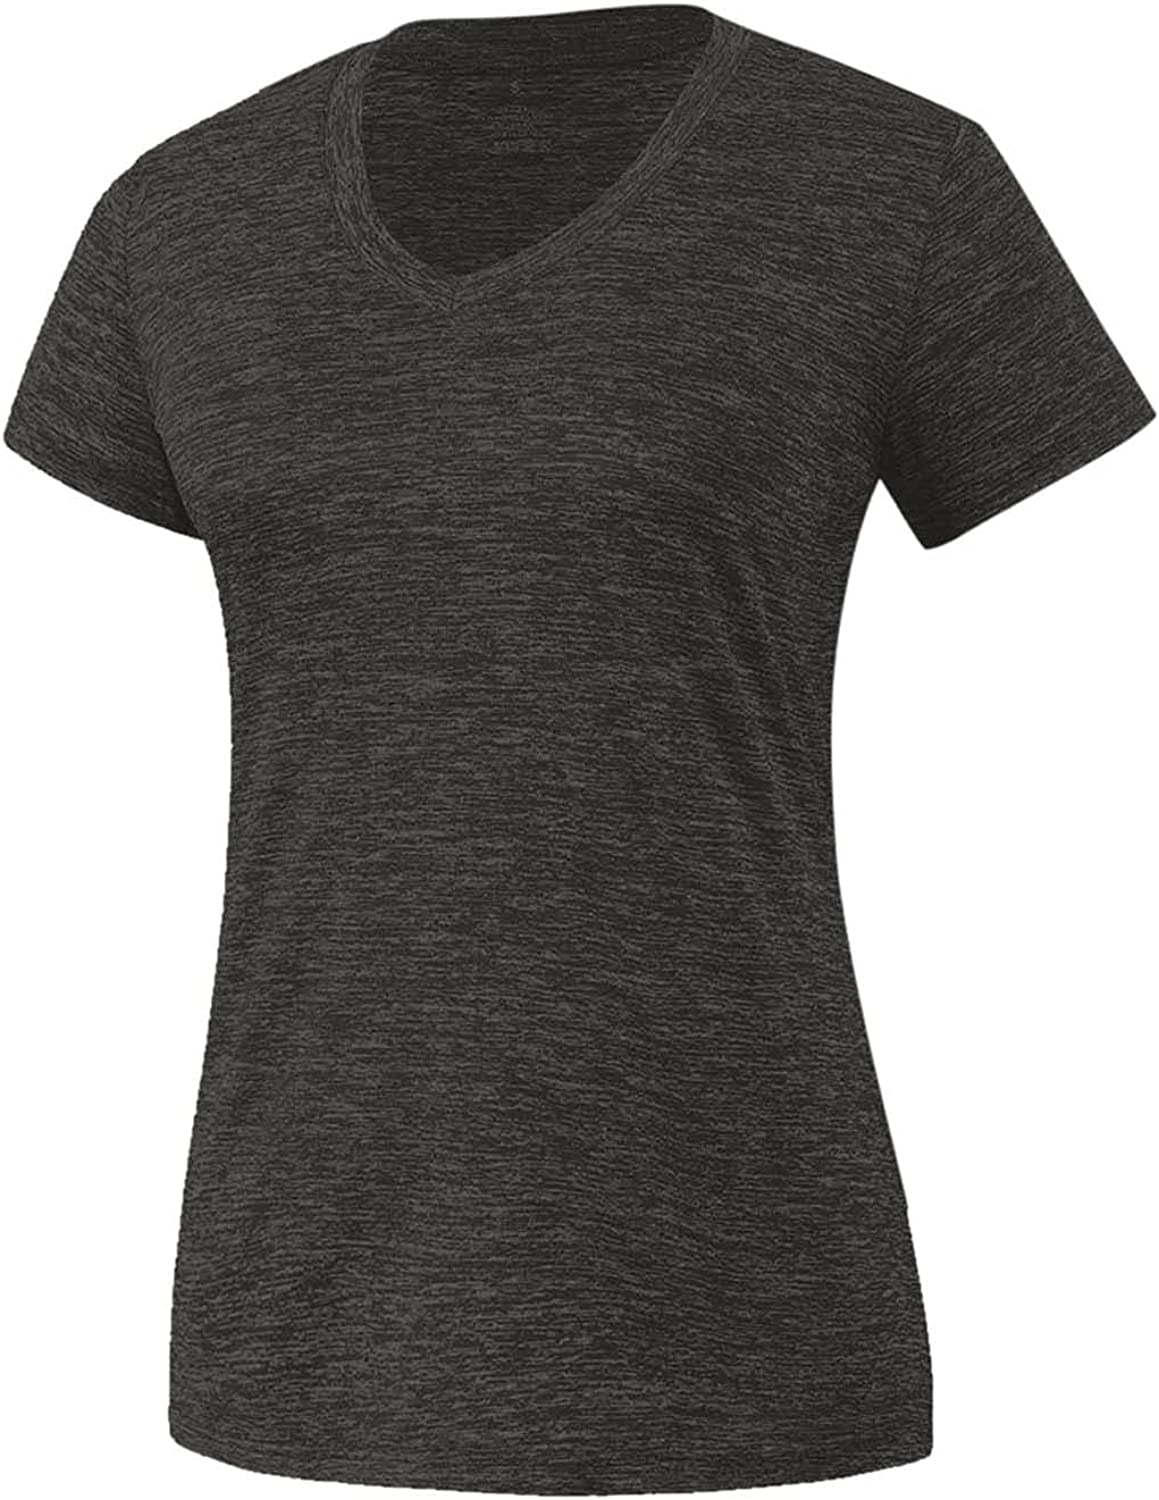 Workout Tops for Women Yoga Gym Shirts V Neck Solid Tee Athletic Short Sleeve Shirts Run Fitness Sportswear